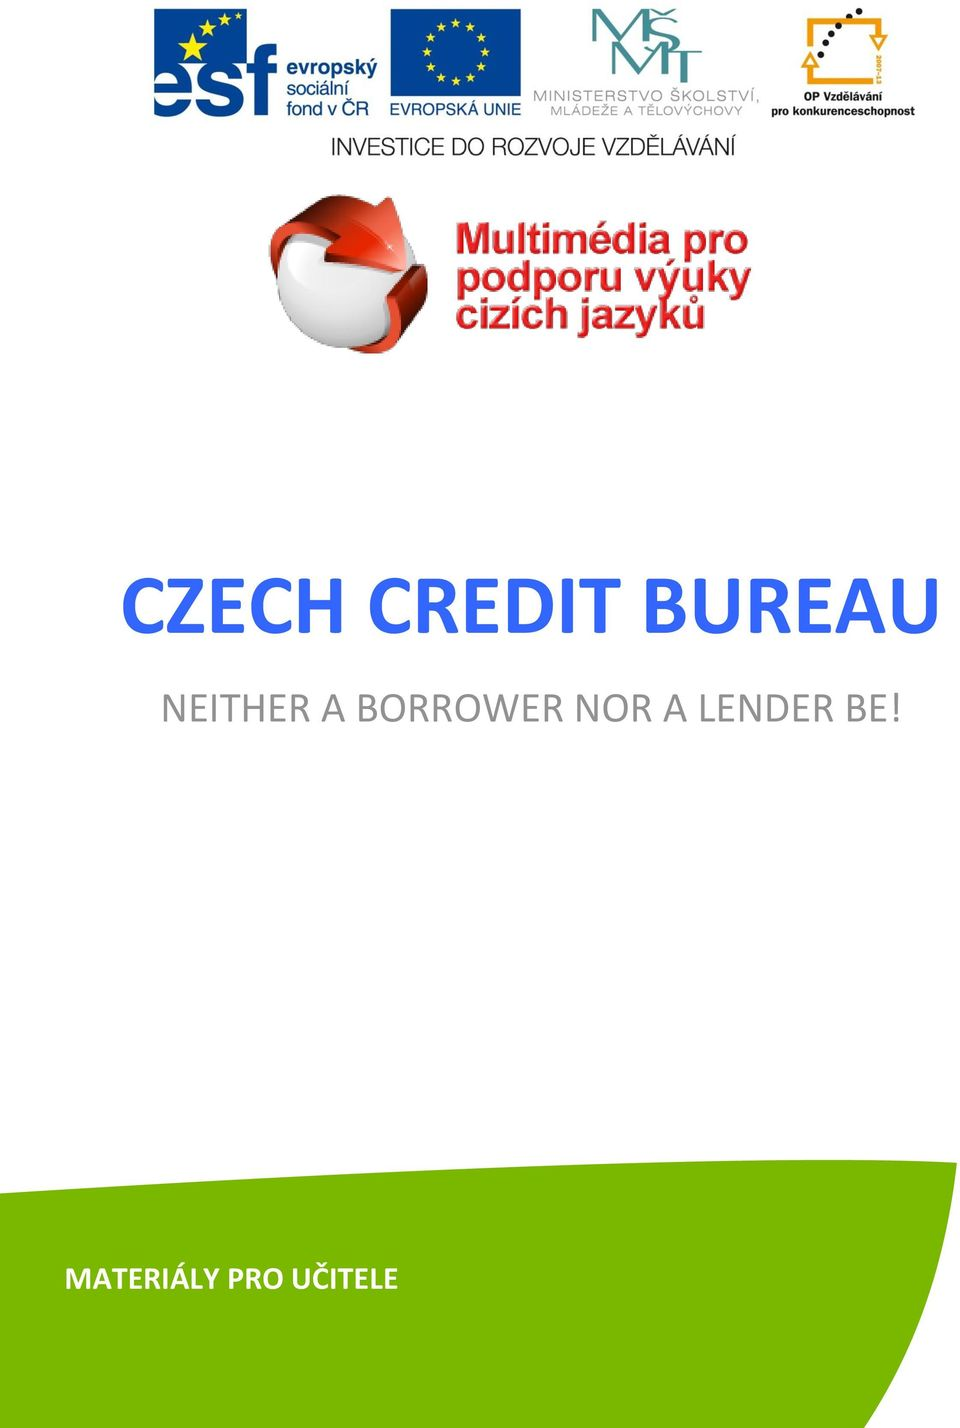 NOR A LENDER BE!